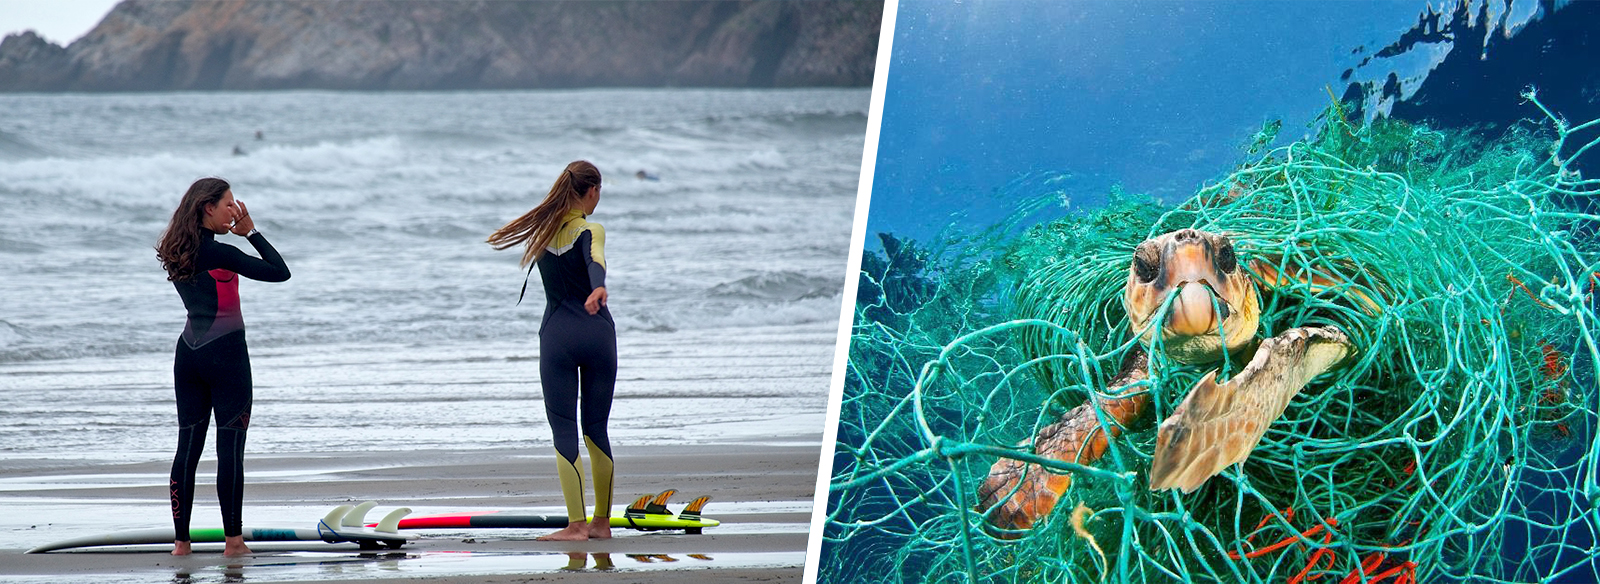 OceanZen: Empowering Women Who Loves to Take Care of the Ocean - Seams For Dreams